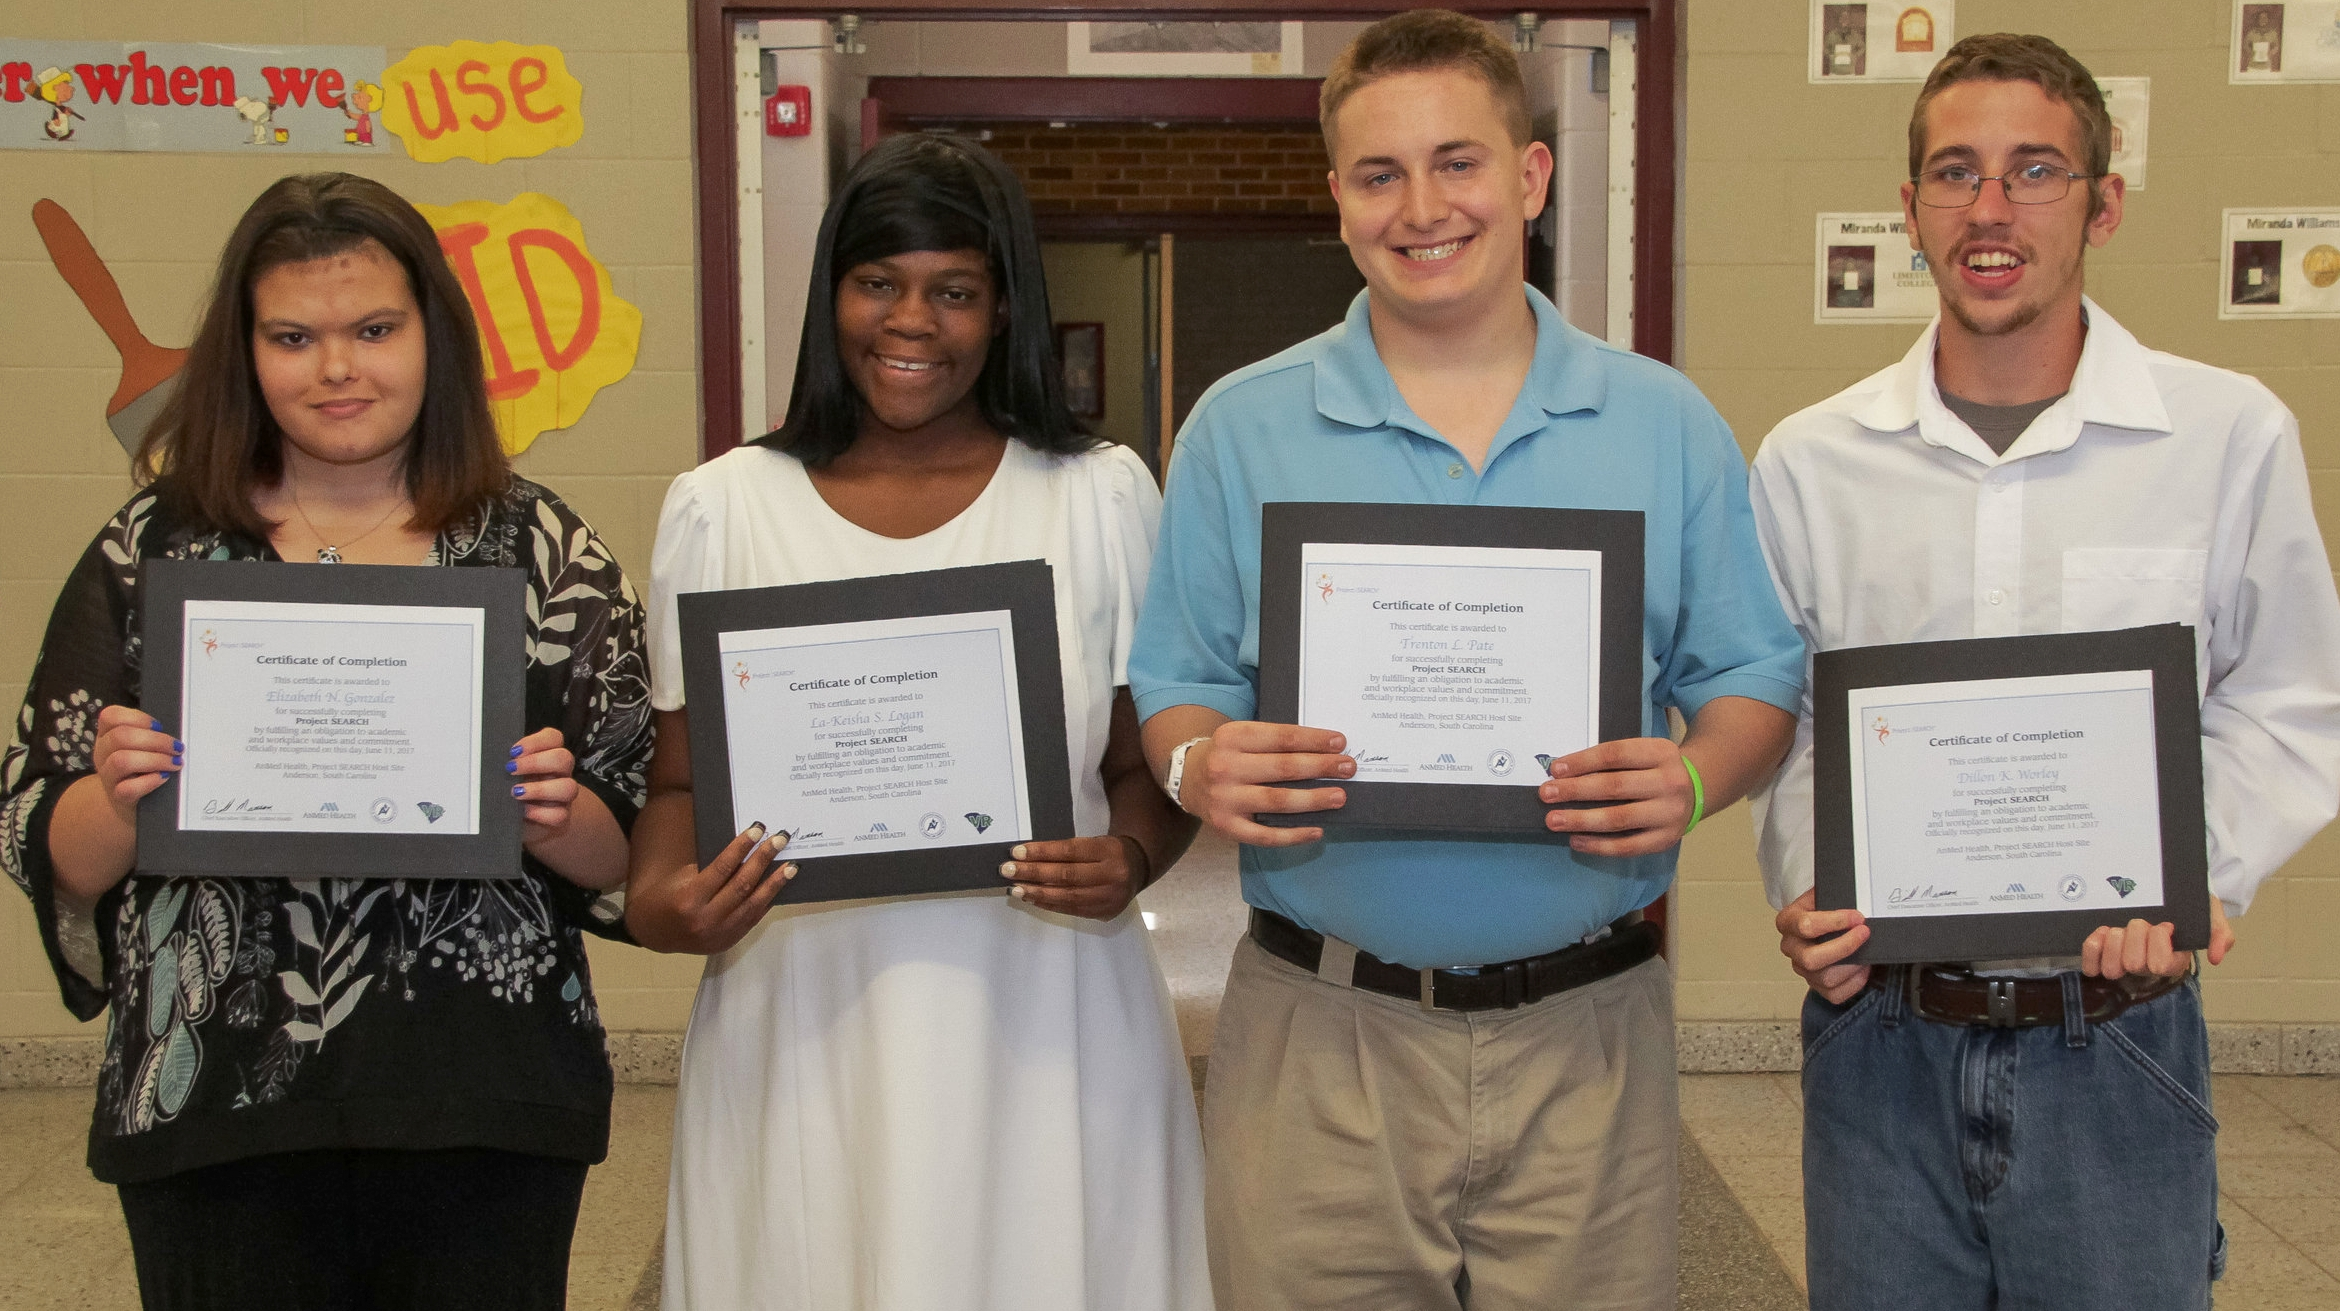 The first class of Project SEARCH graduates from AnMed Health (left to right):Elizabeth Gonzalez, La-Keisha Logan, Trenton Pate and Dillon Worley. Not pictured: Aron Gilliam.